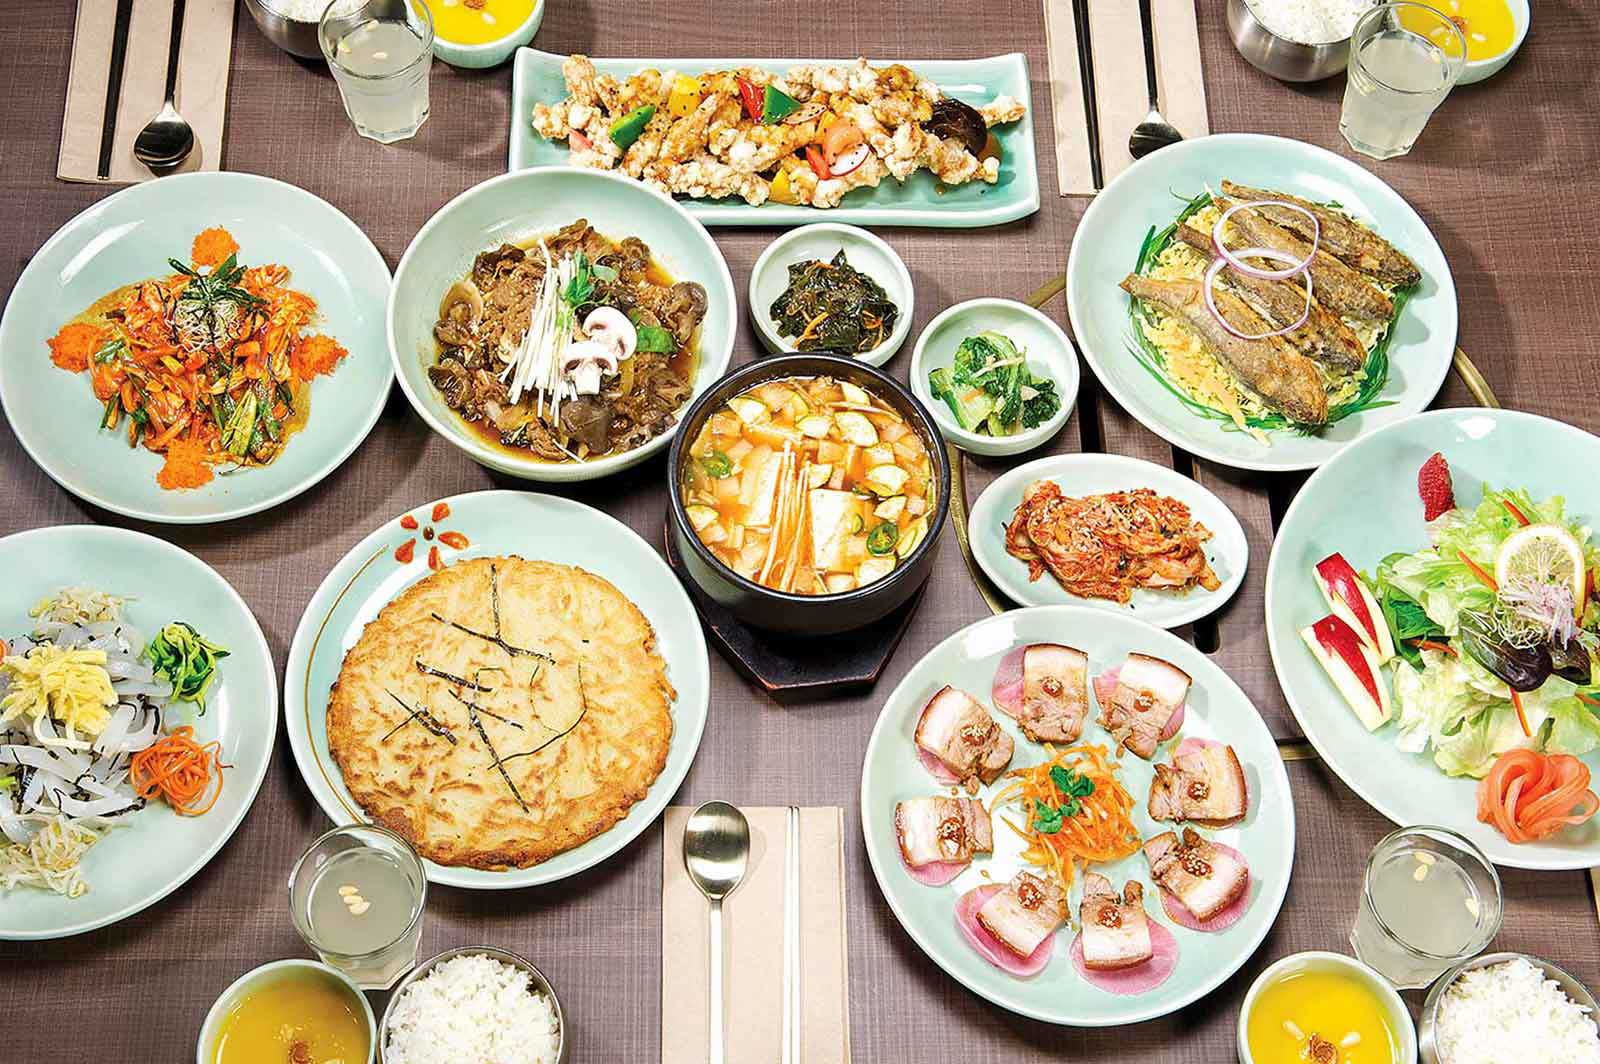 Koreans discuss whether its better to have Korean dish names romanized or directly translated to English